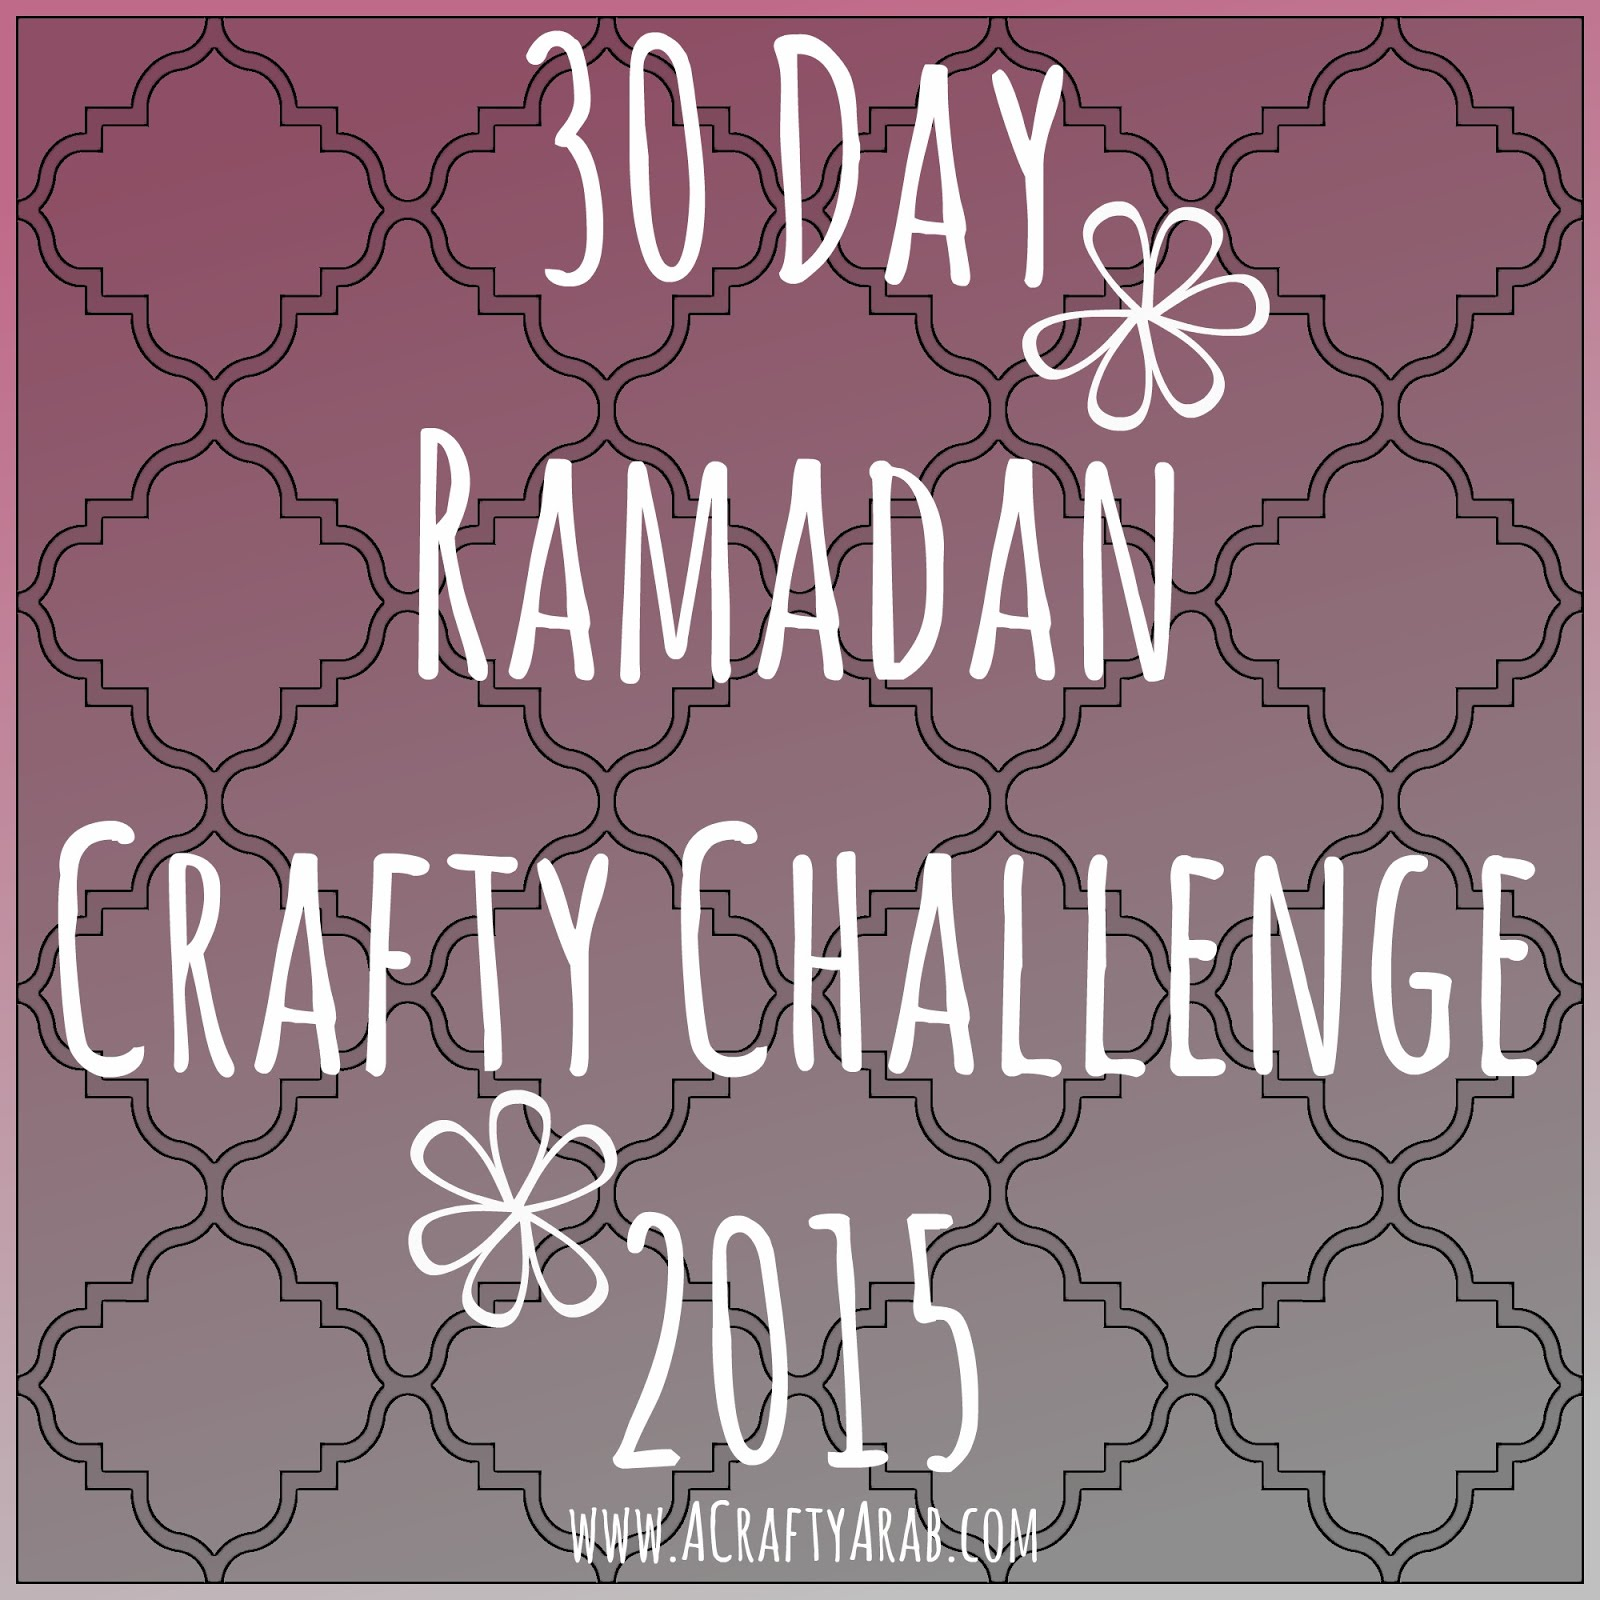 30 days of Ramadan Crafty Challenge 2015